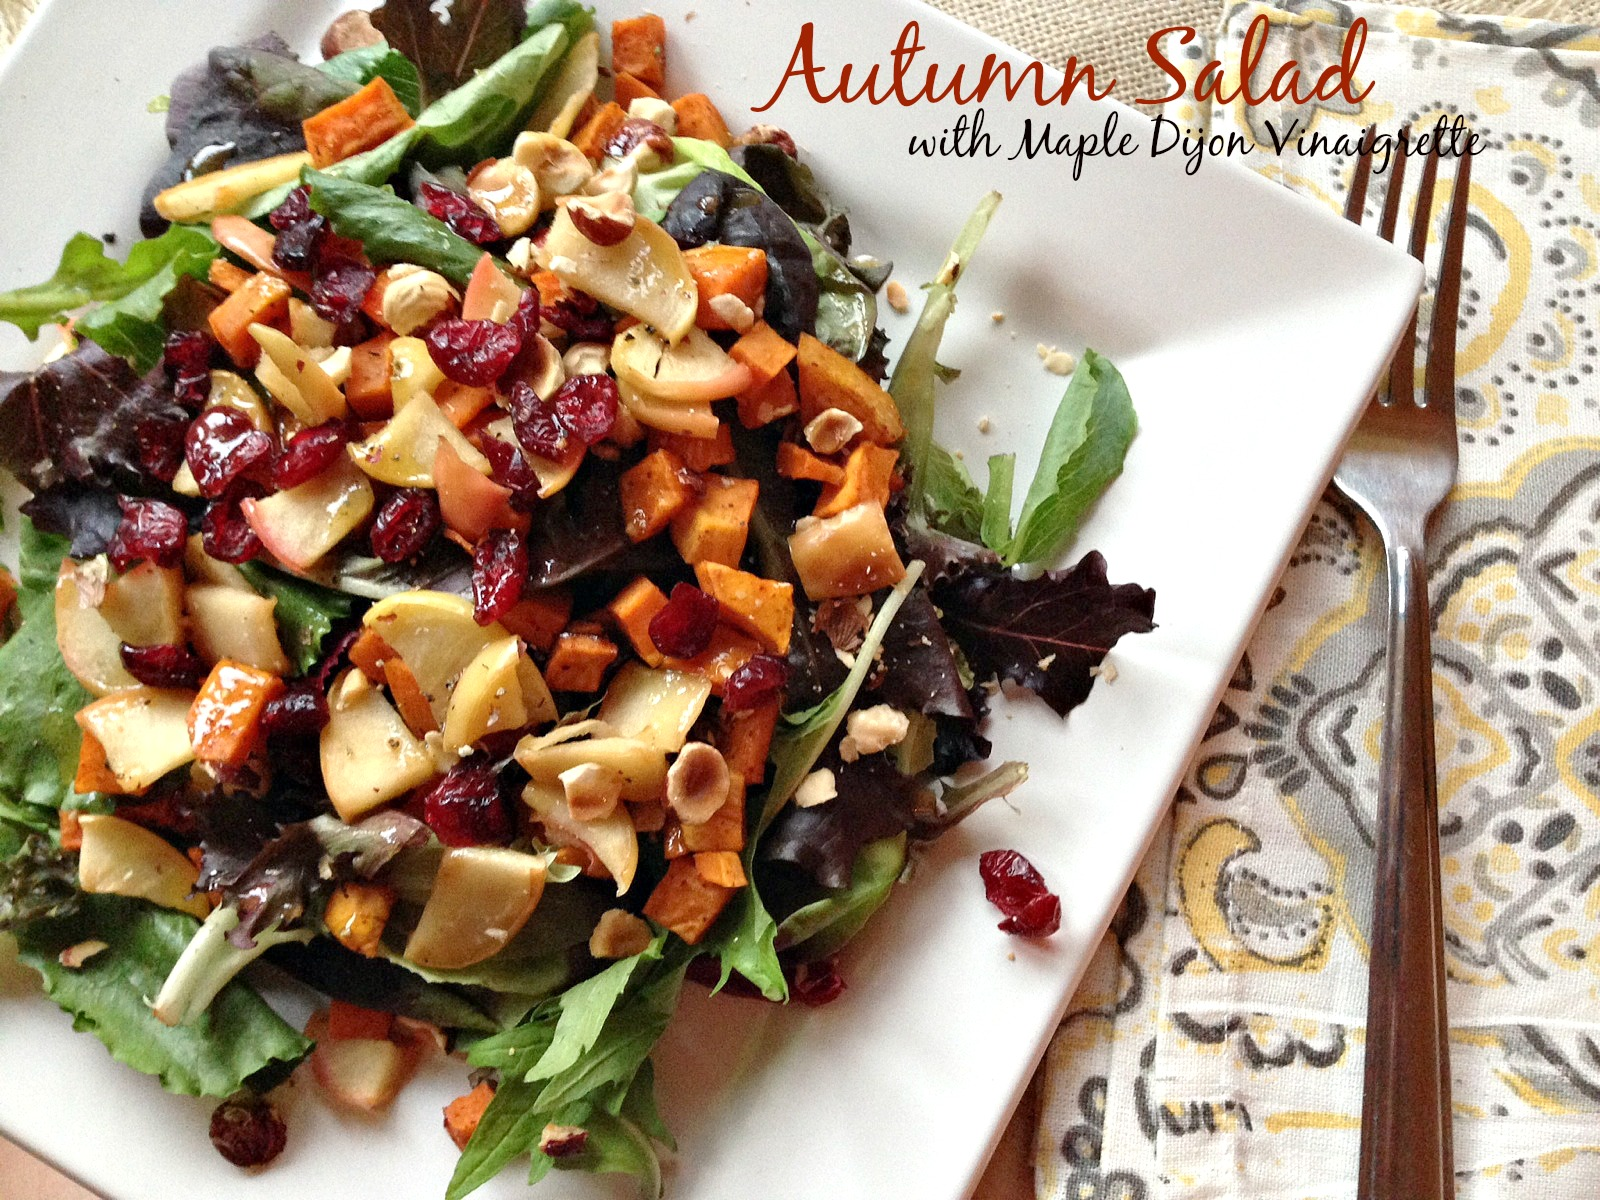 Autumn Salad with Maple Dijon Vinaigrette